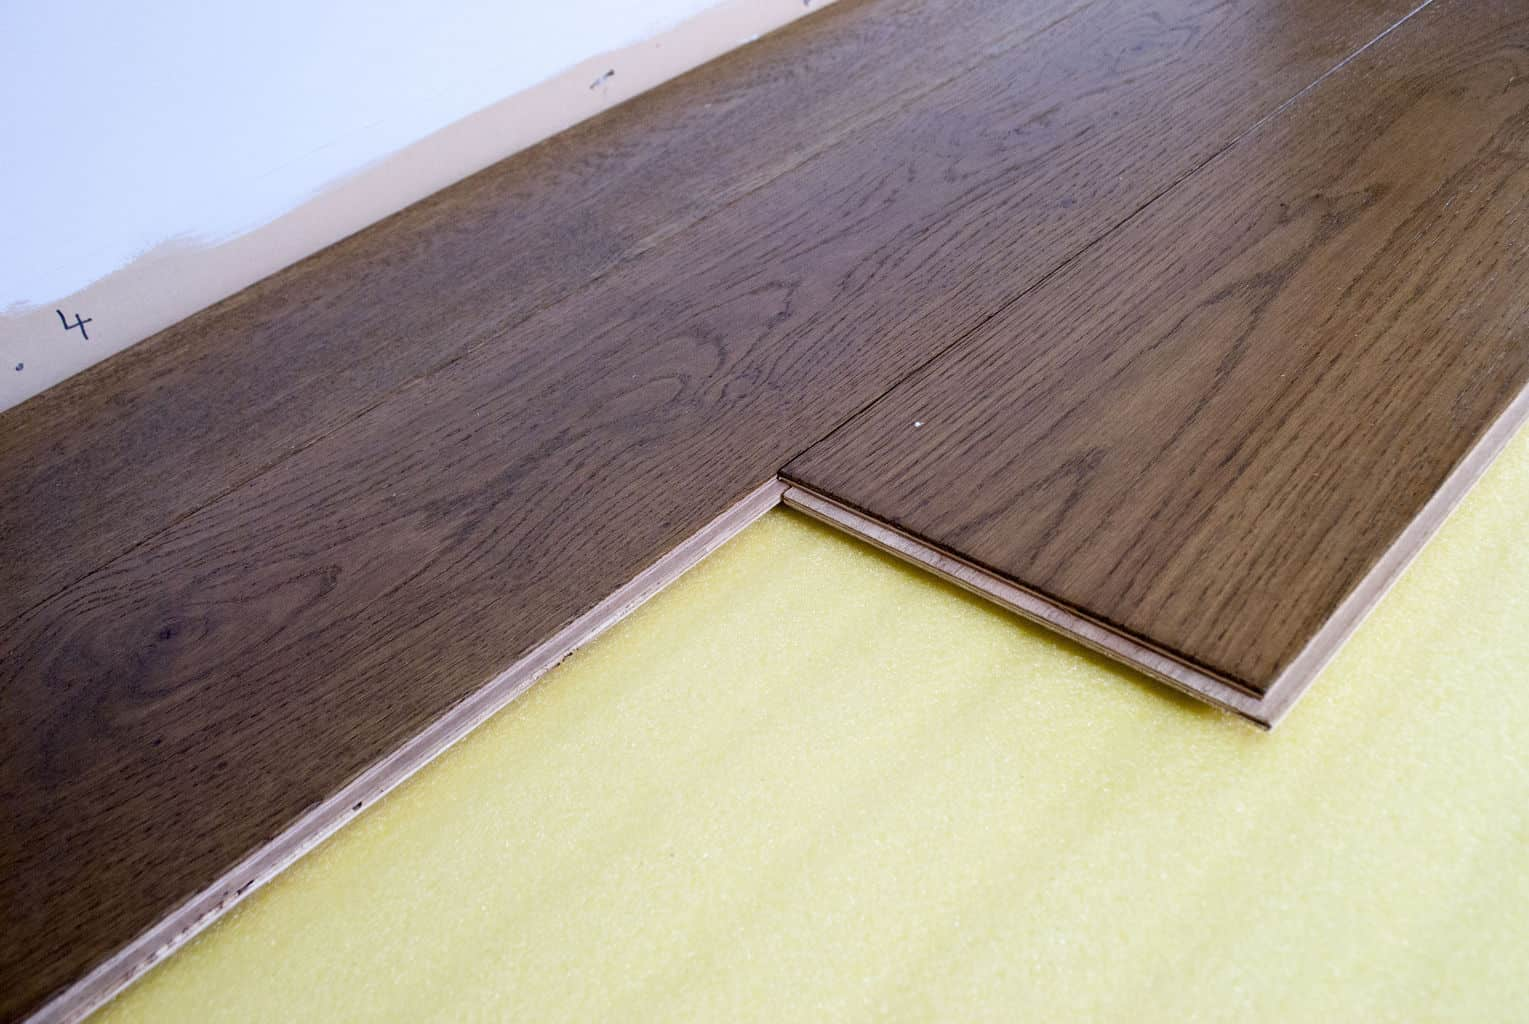 Flooring Underlay For Laminate Flooring